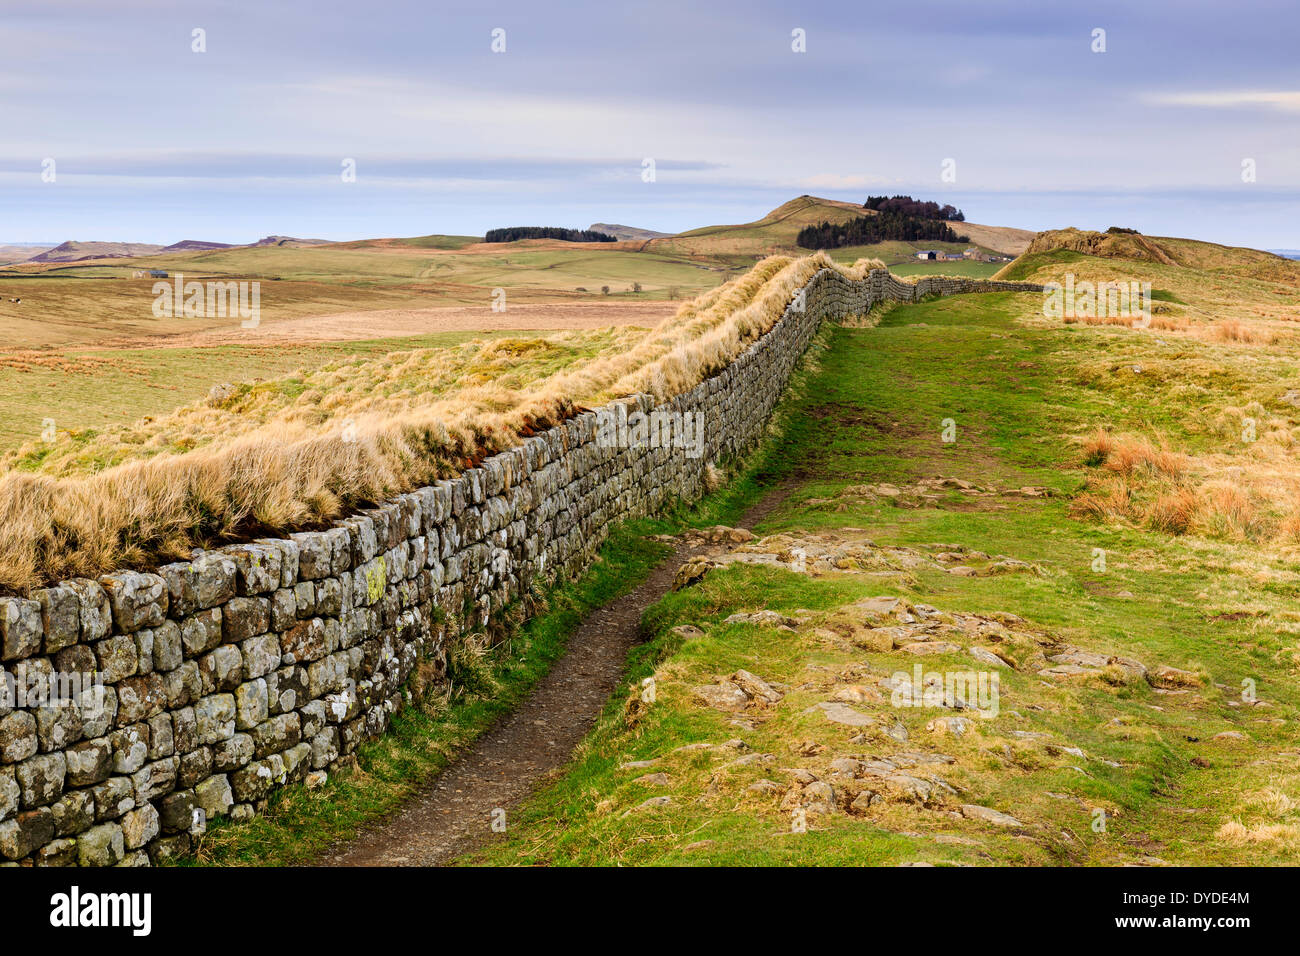 A view along Hadrians Wall near Housesteads Crag in evening light. - Stock Image